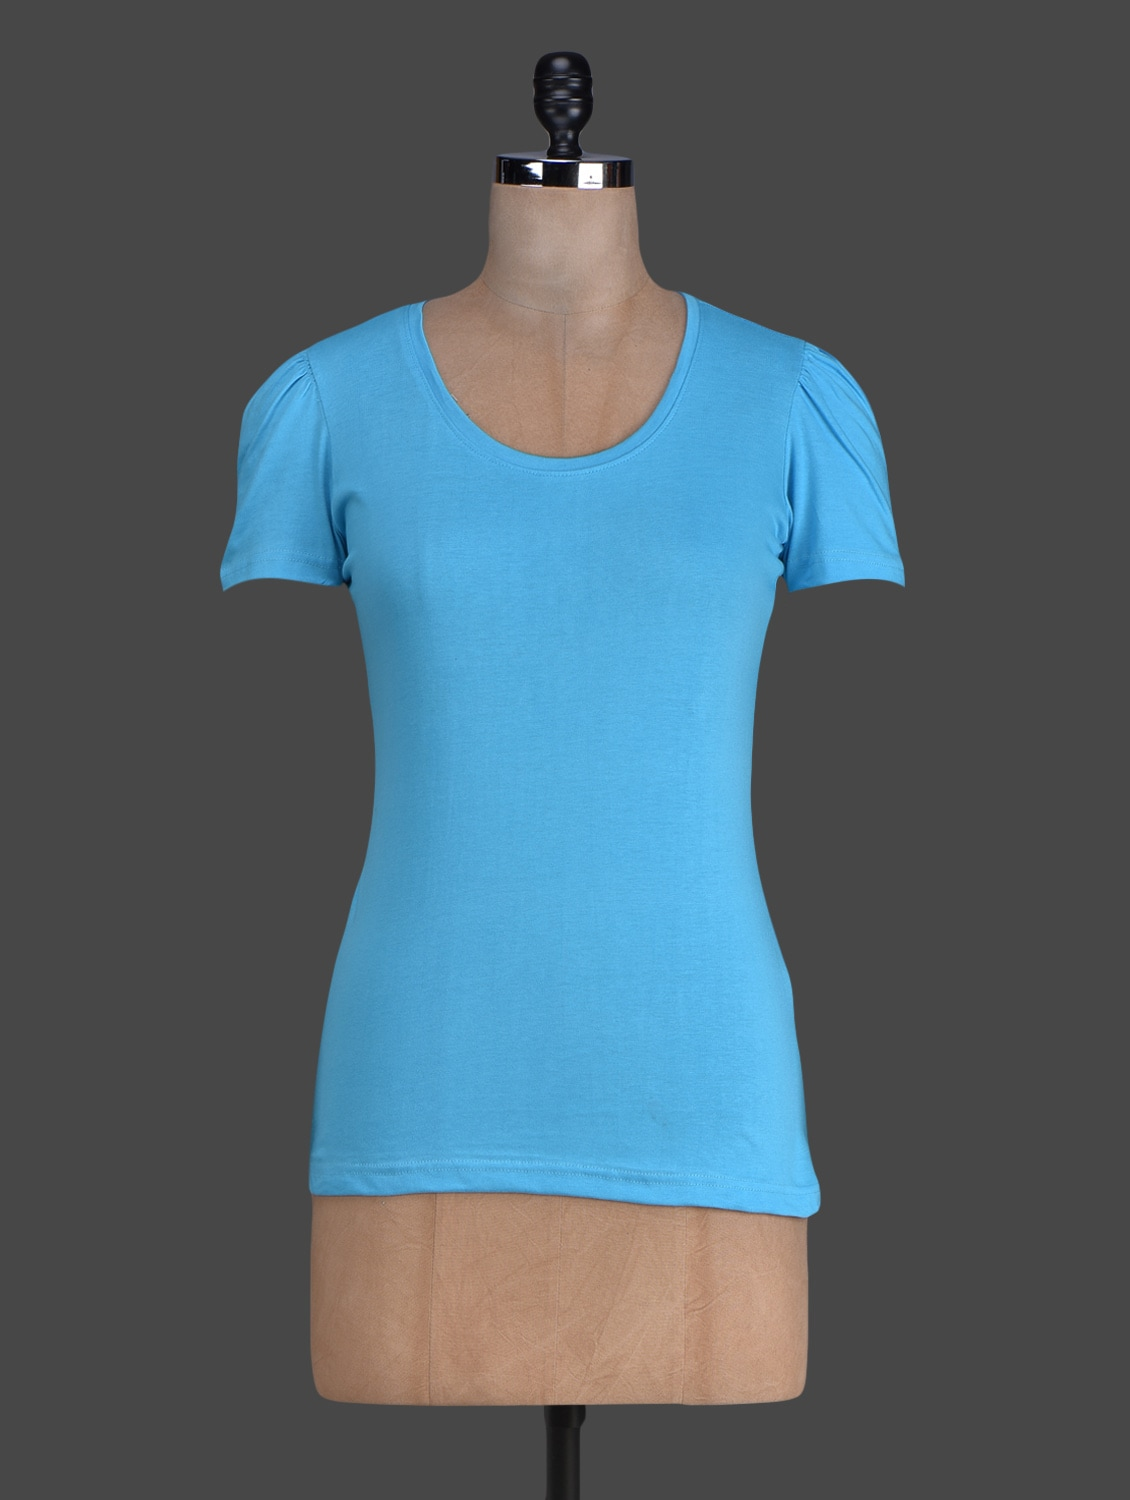 Blue Plain Short Sleeves Cotton Tee - By